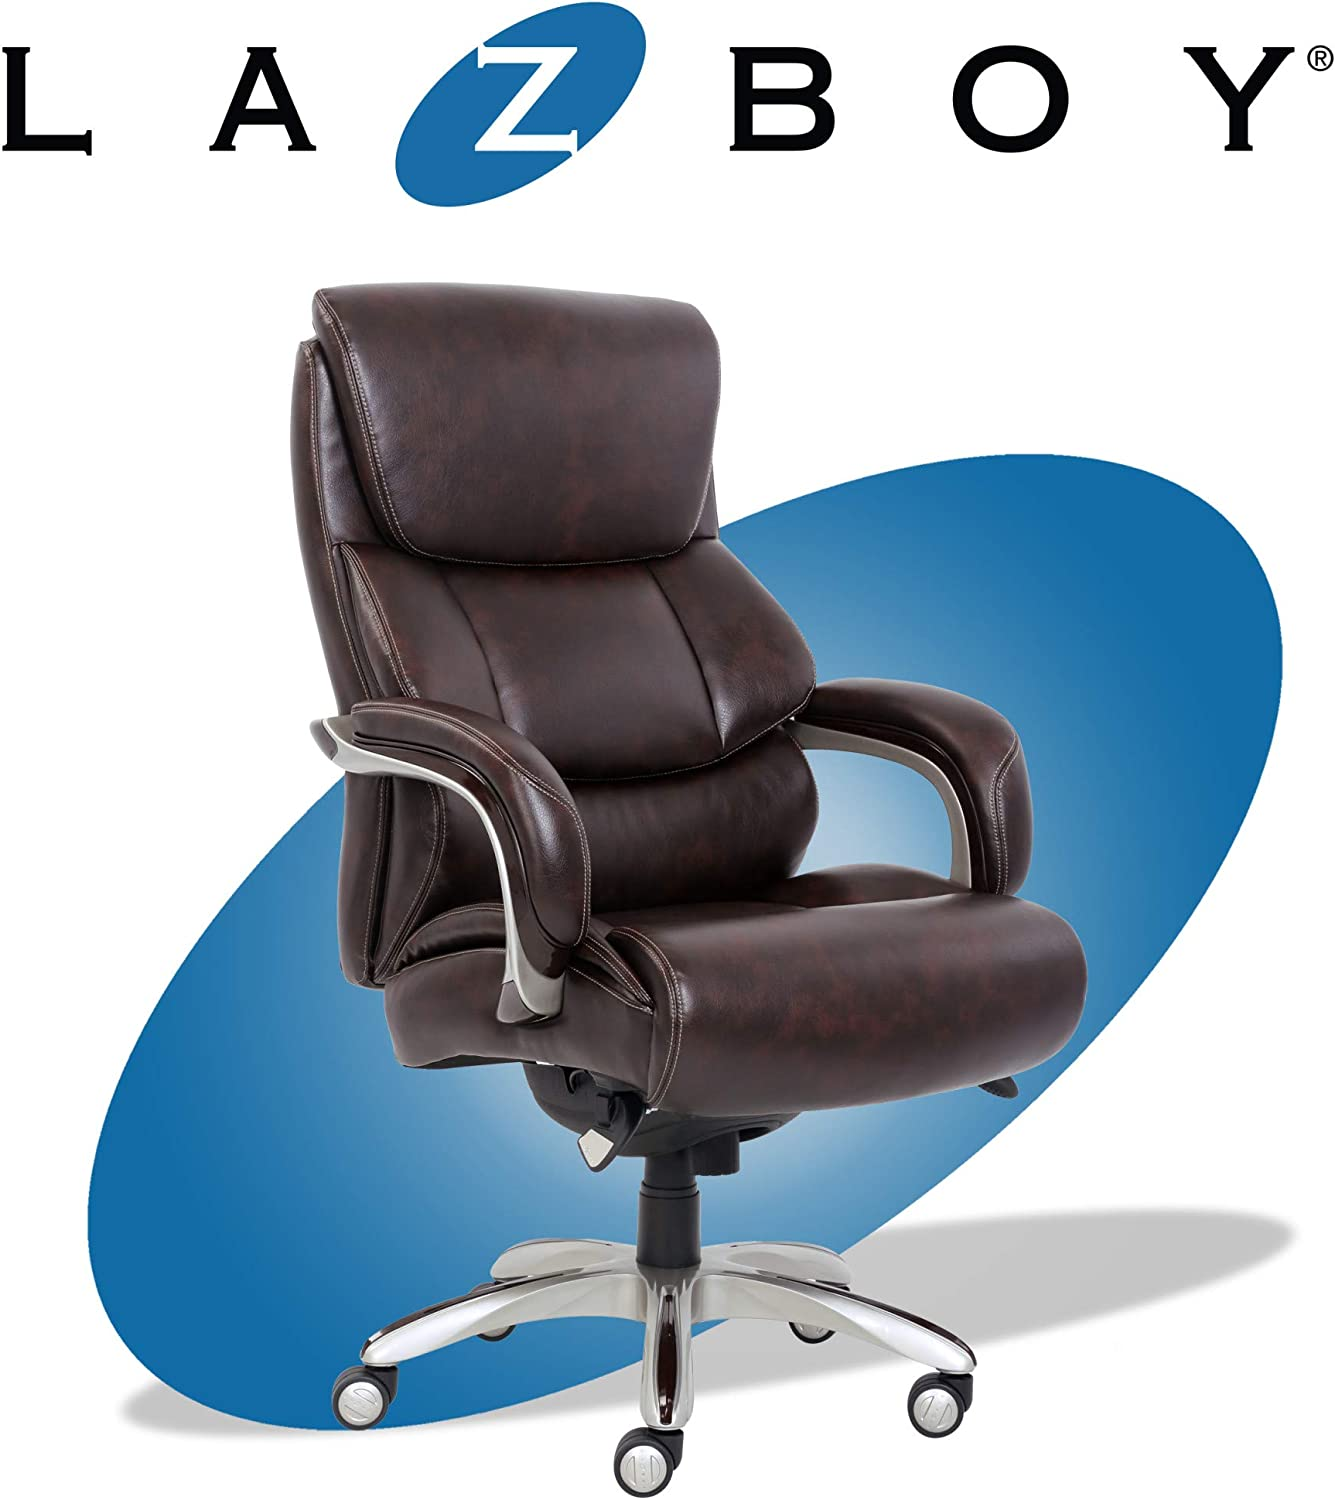 La-Z-Boy Executive Comfort Core Cushions, Office Chair with Black Wood  Accents, Bonded Leather, Dark Brown